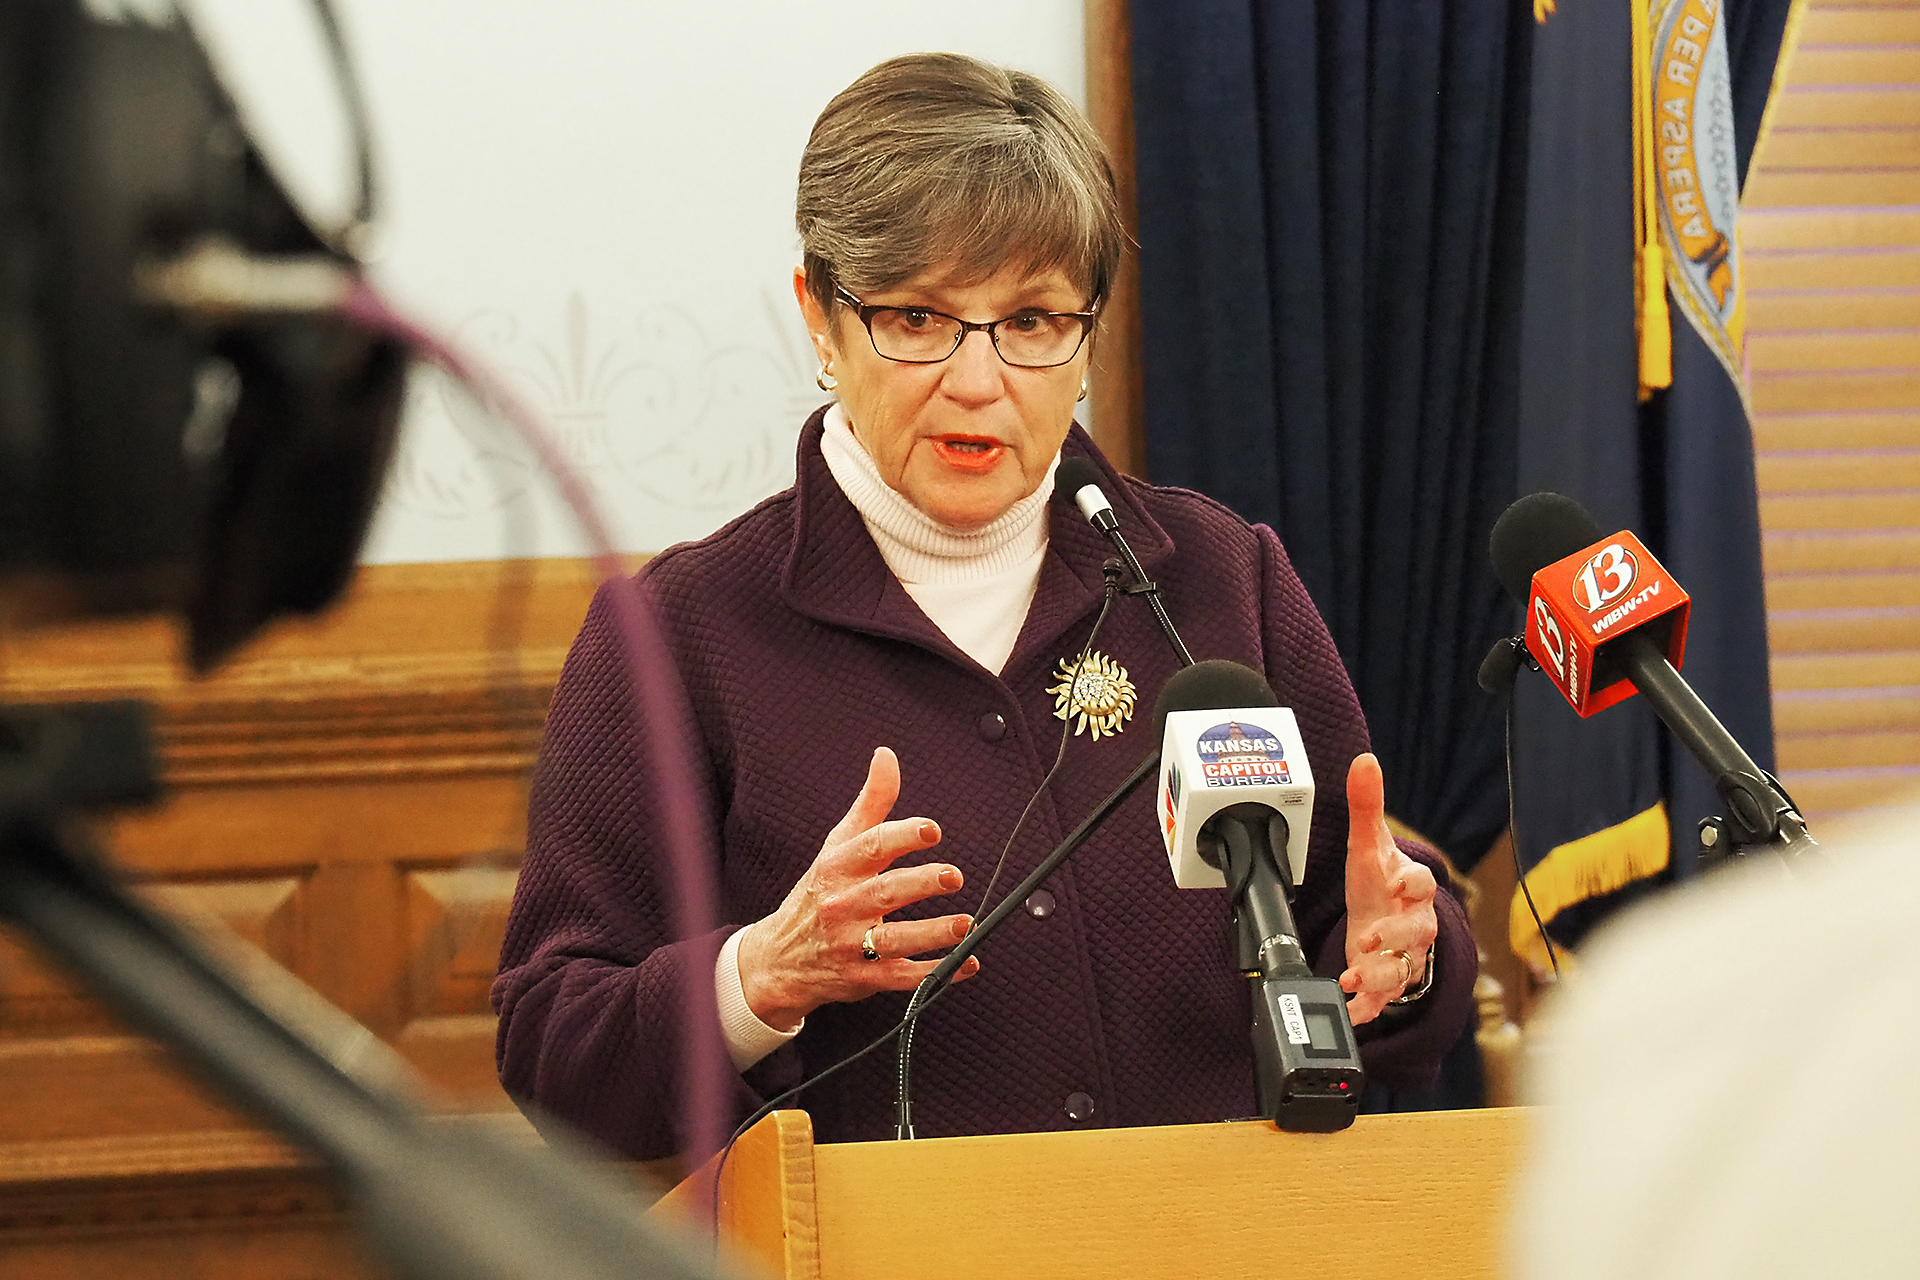 Gov. Laura Kelly signed Senate Bill 40 that broadened the Legislature's oversight powers during the COVID-19 pandemic and indicated she would re-issue a dozen executive orders April 1, including guidance on wearing masks. (Sherman Smith/Kansas Reflector)